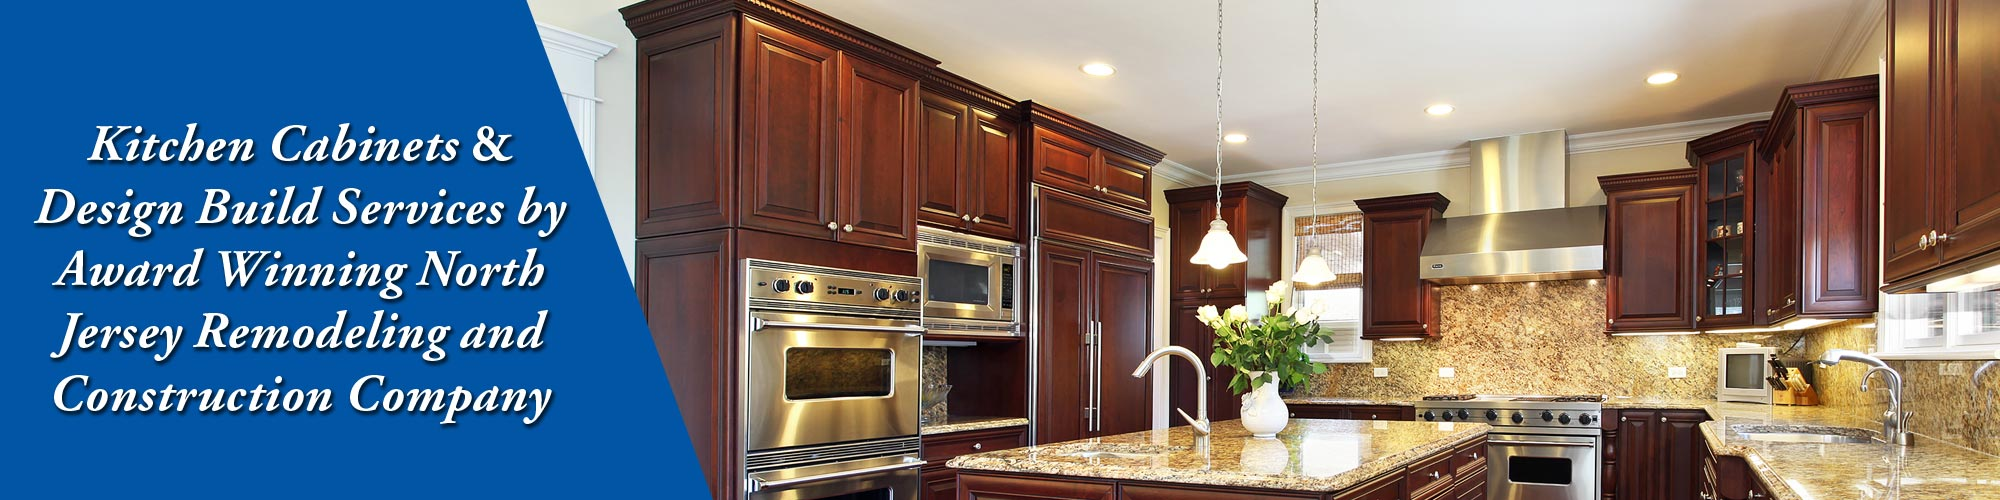 Kitchen Cabinets Design and Build